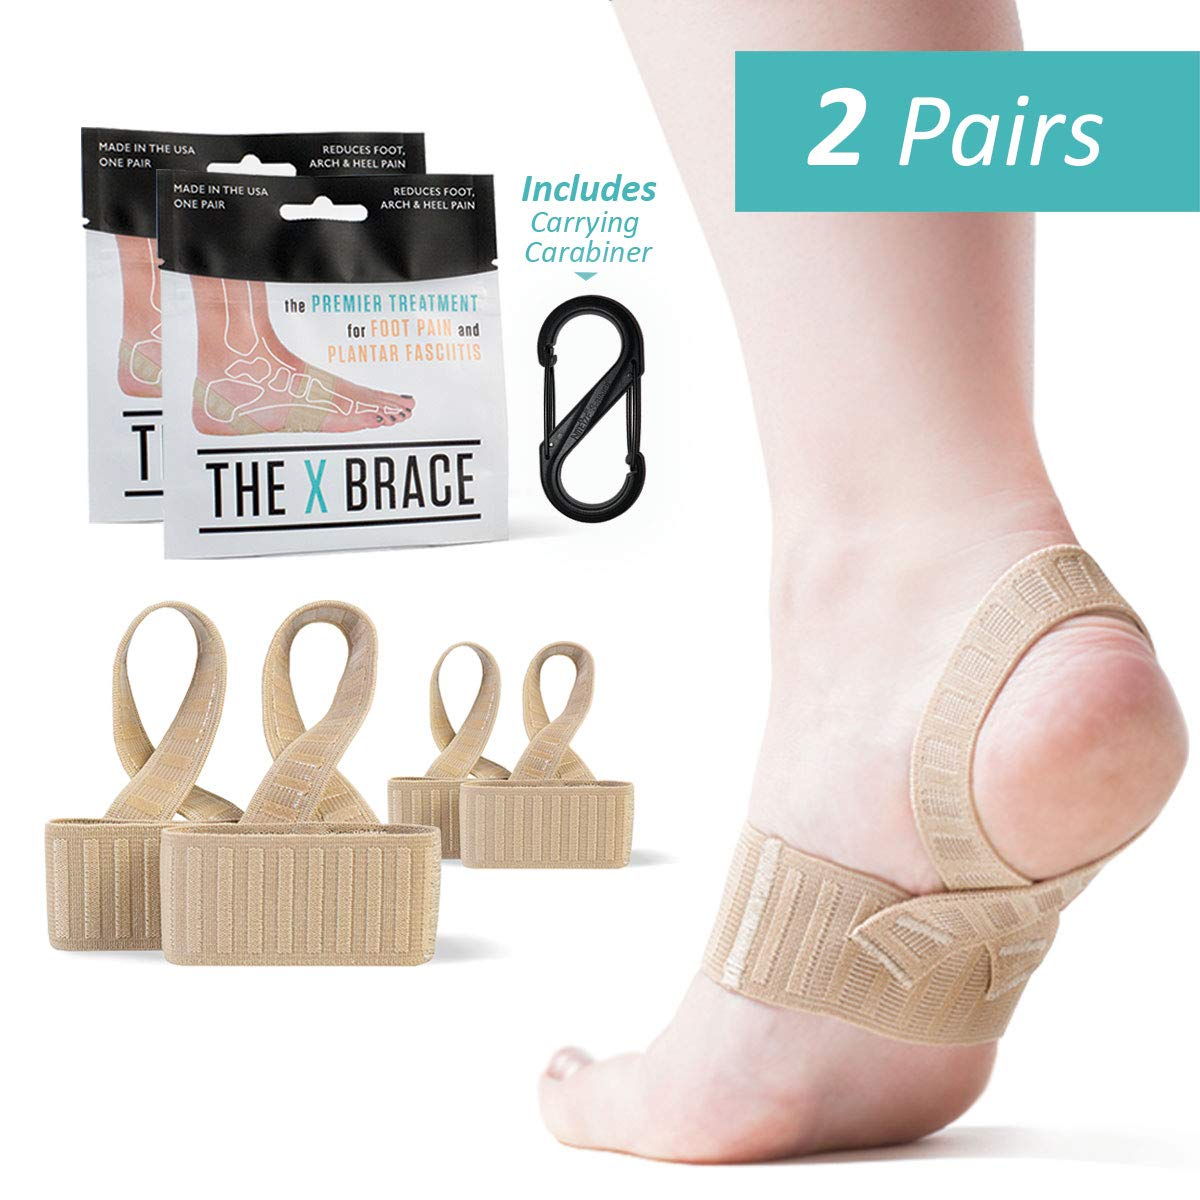 The Original X Brace - Arch Support Brace and Compression for Plantar Fasciitis, Sever's Disease, Flat Feet, Fallen Arches, Over-Pronation and Heel Pain, Logo Free - Large (2-Pairs) by The X Brace